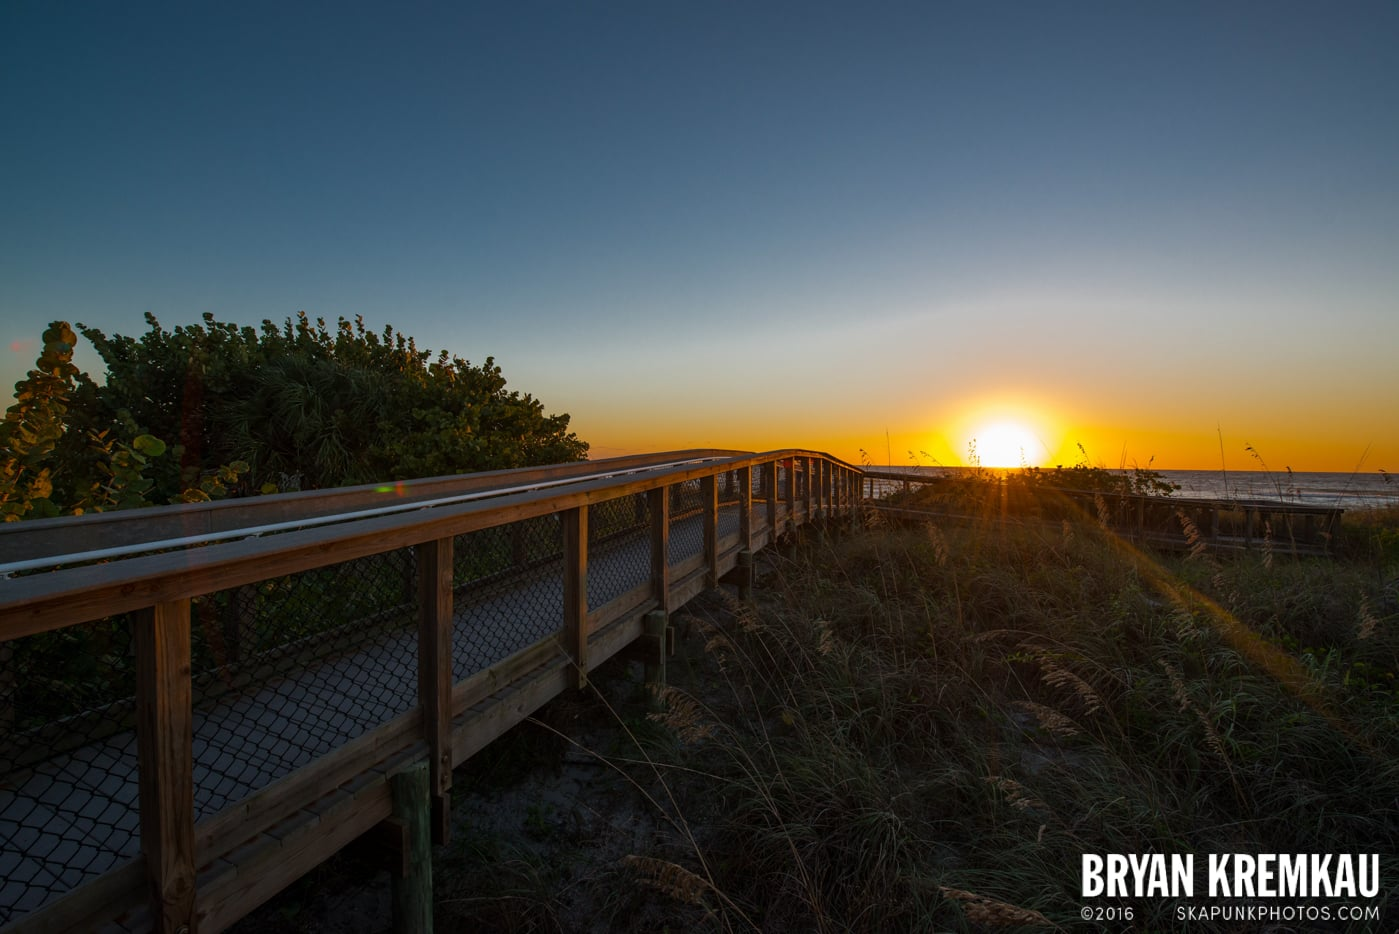 Sunsets, Astrophotography & Birds @ Venice, Florida - 10.25.14 - 11.5.14 (102)